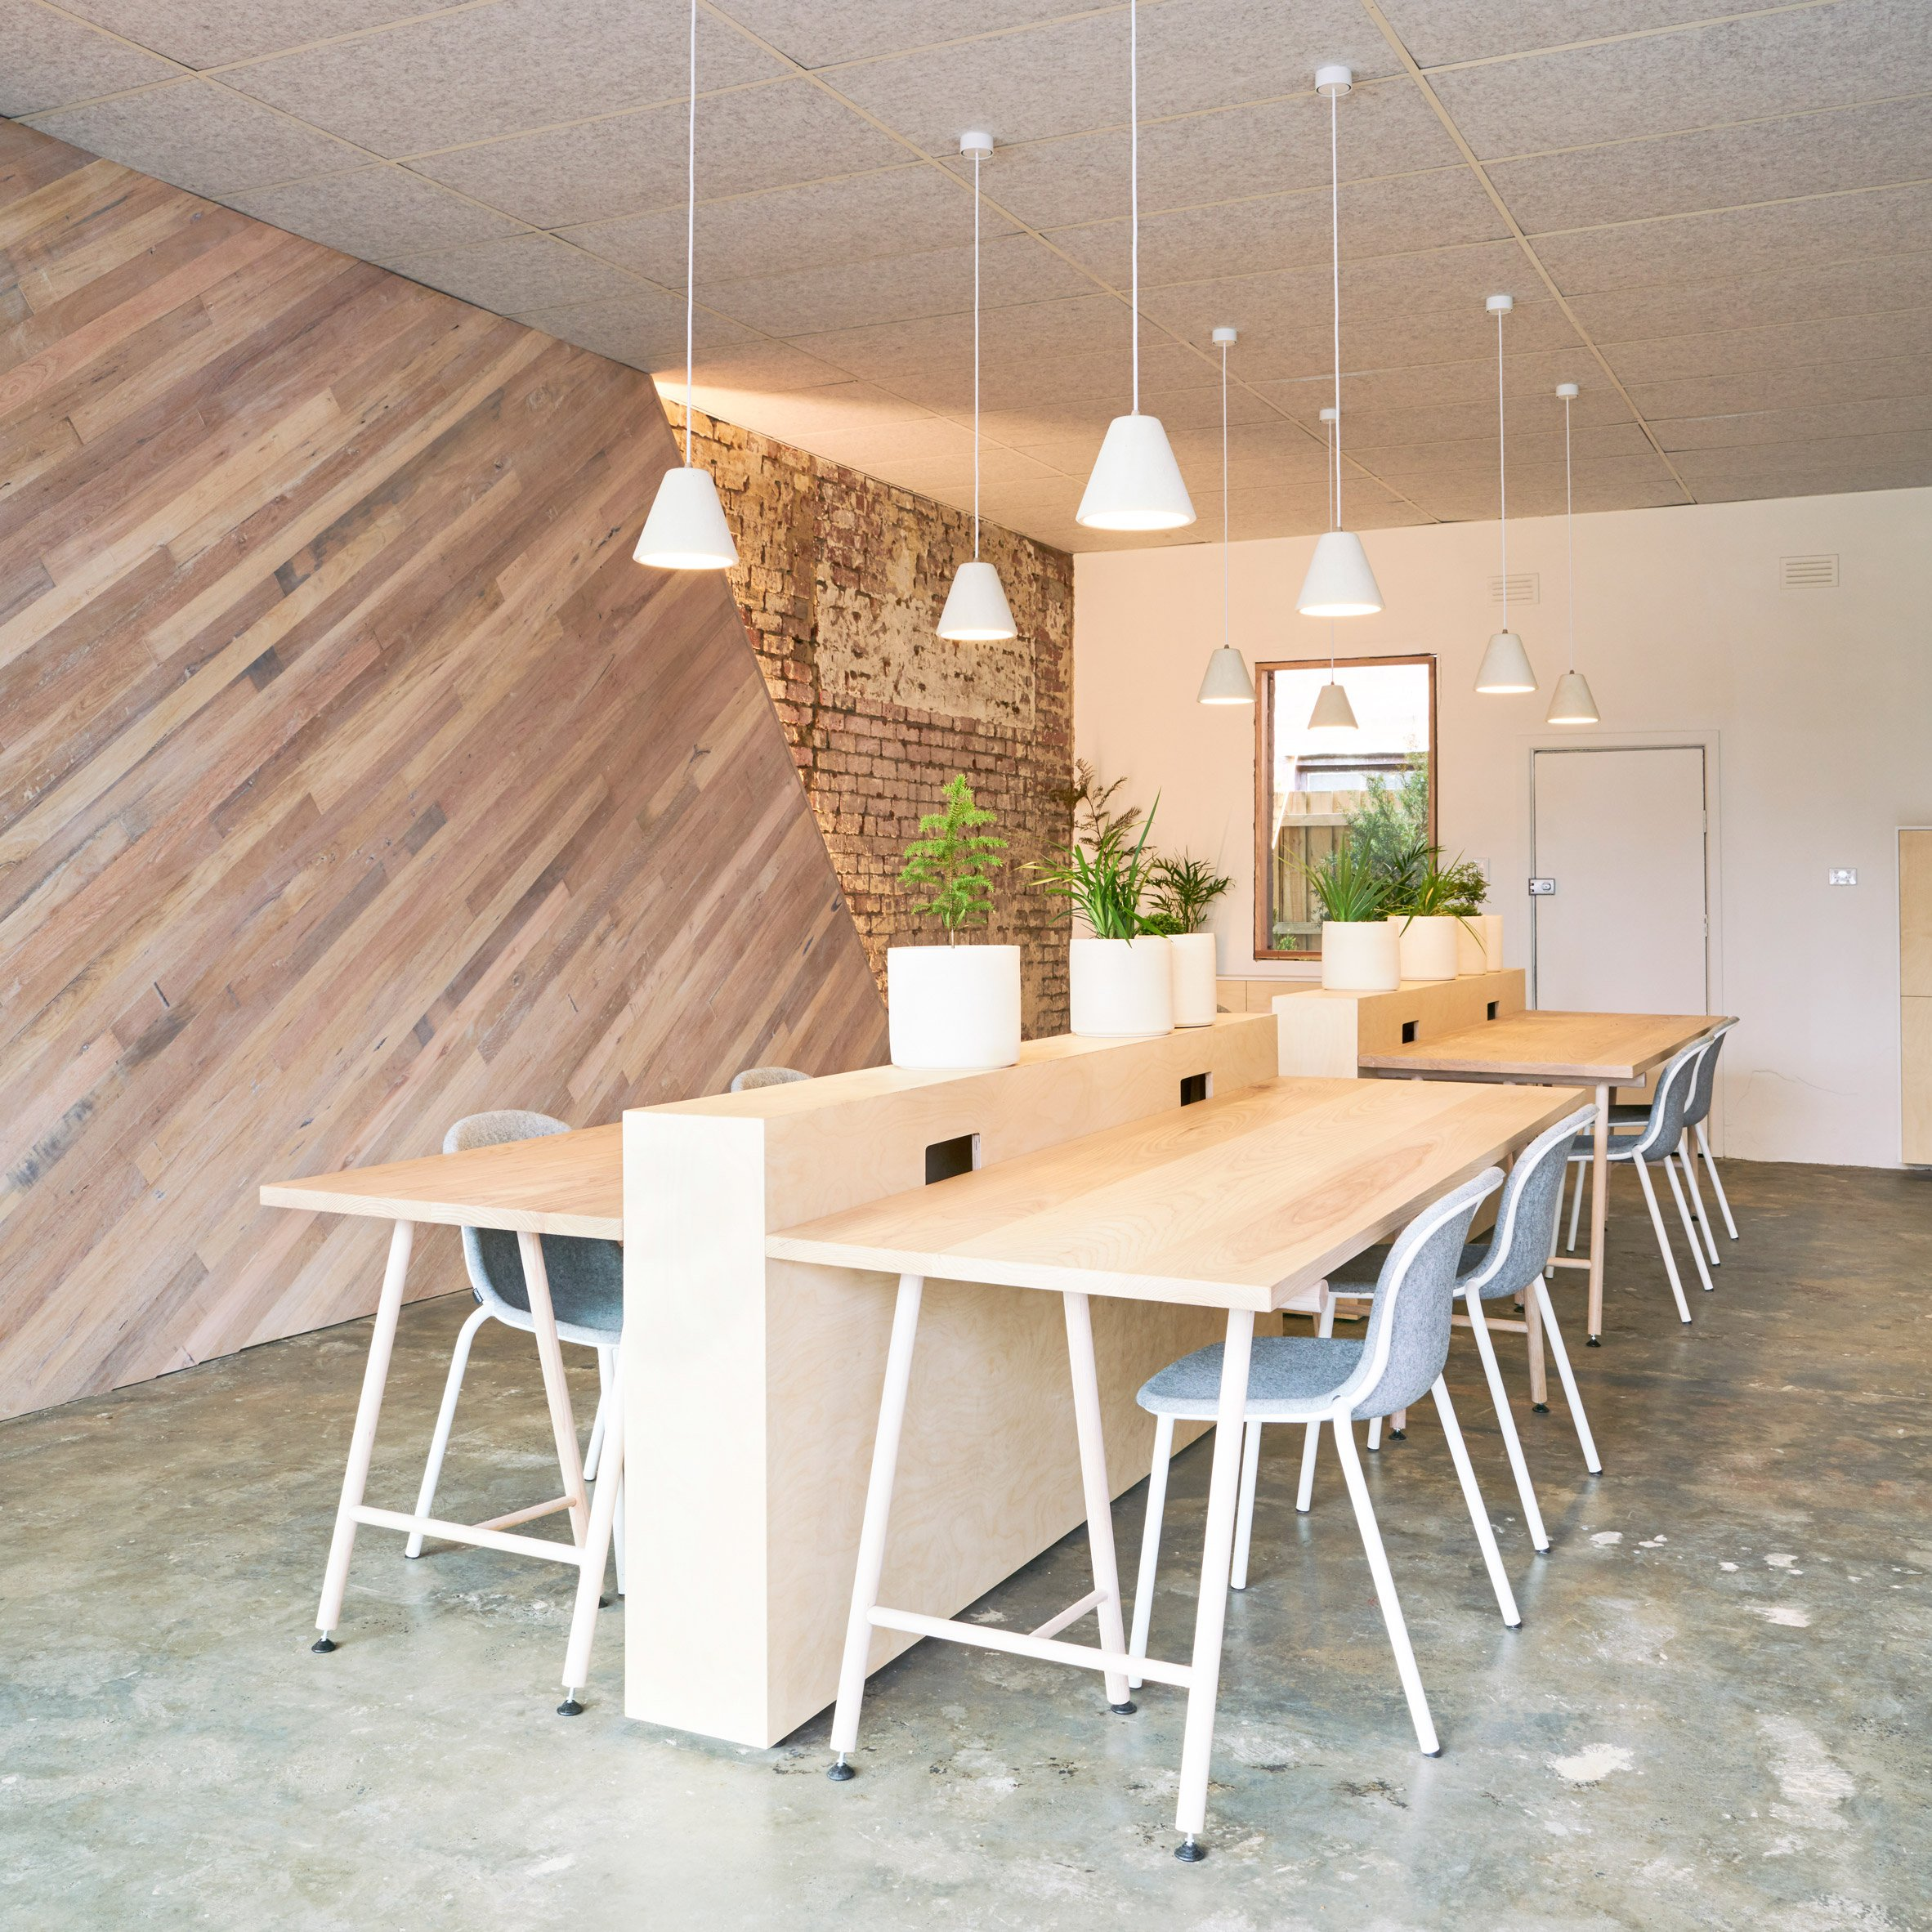 Collective workspace in Melbourne features plank-covered walls and bespoke furniture